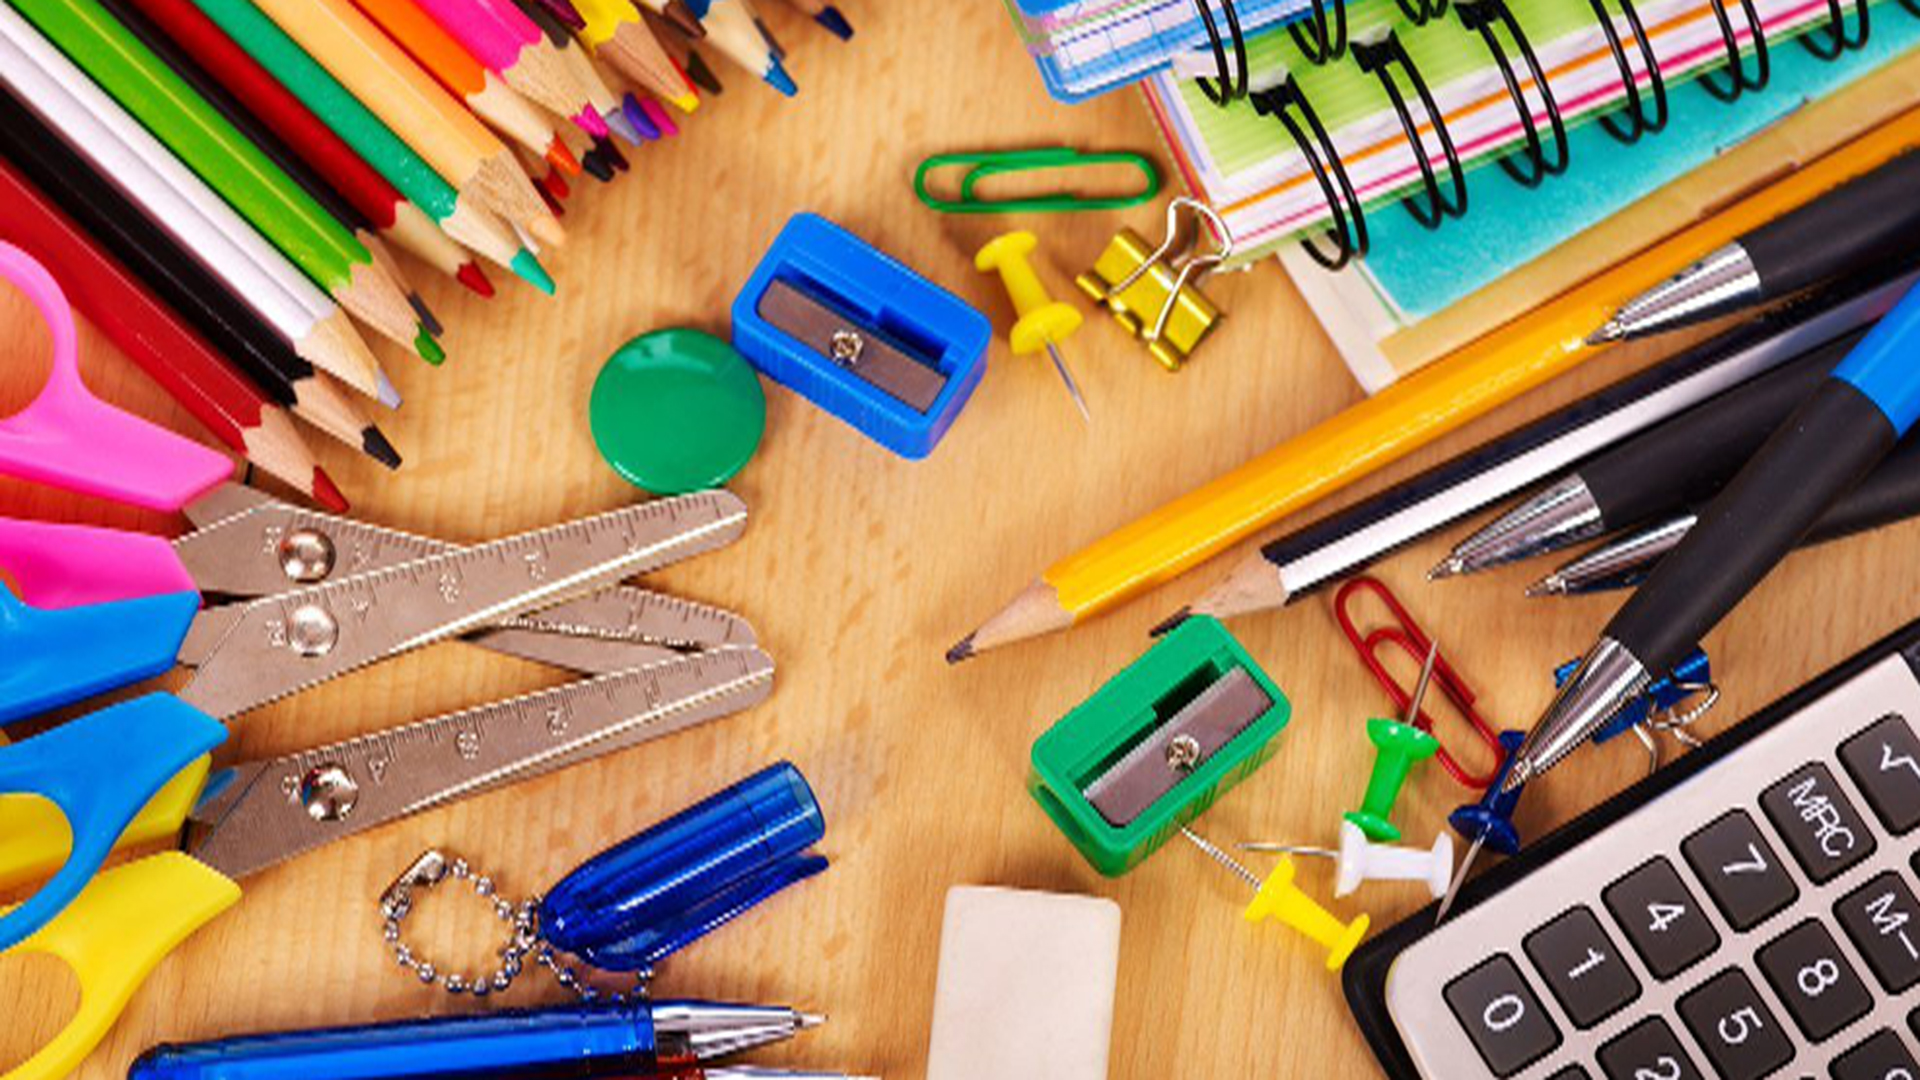 Share a first day of school pic to donate school supplies